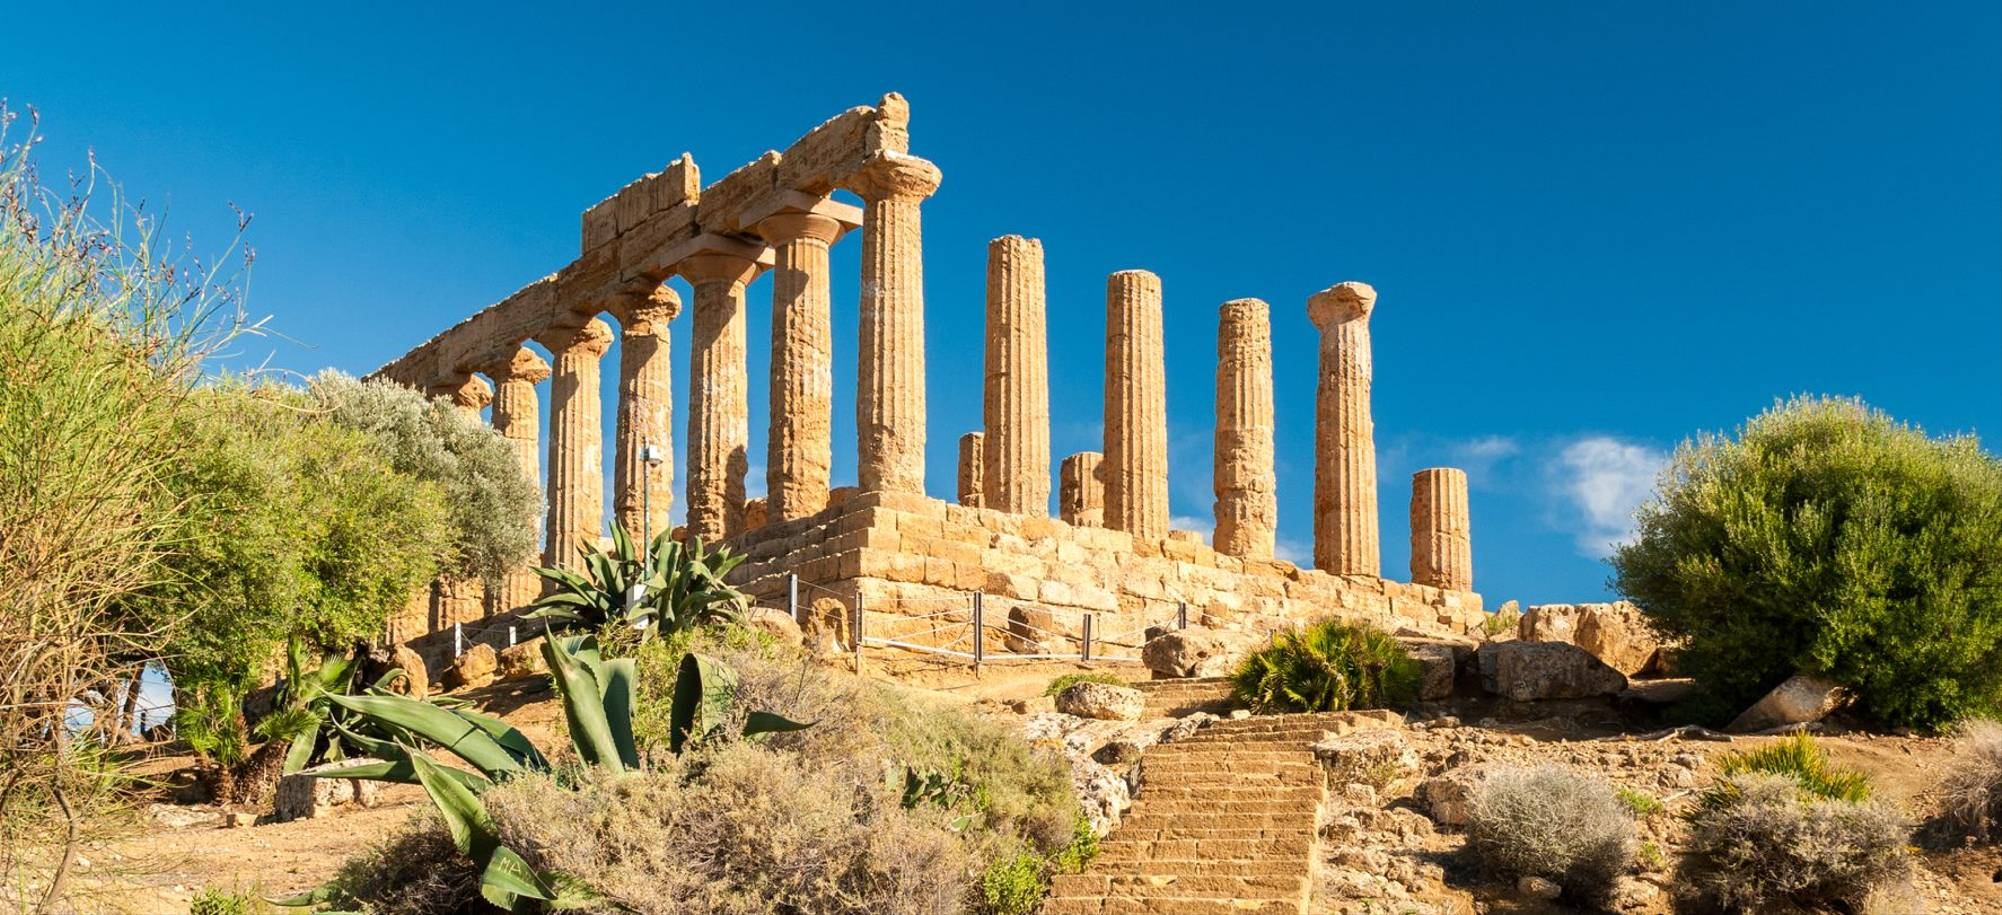 Sicily   Valley Of The Temples   Itinerary Desktop